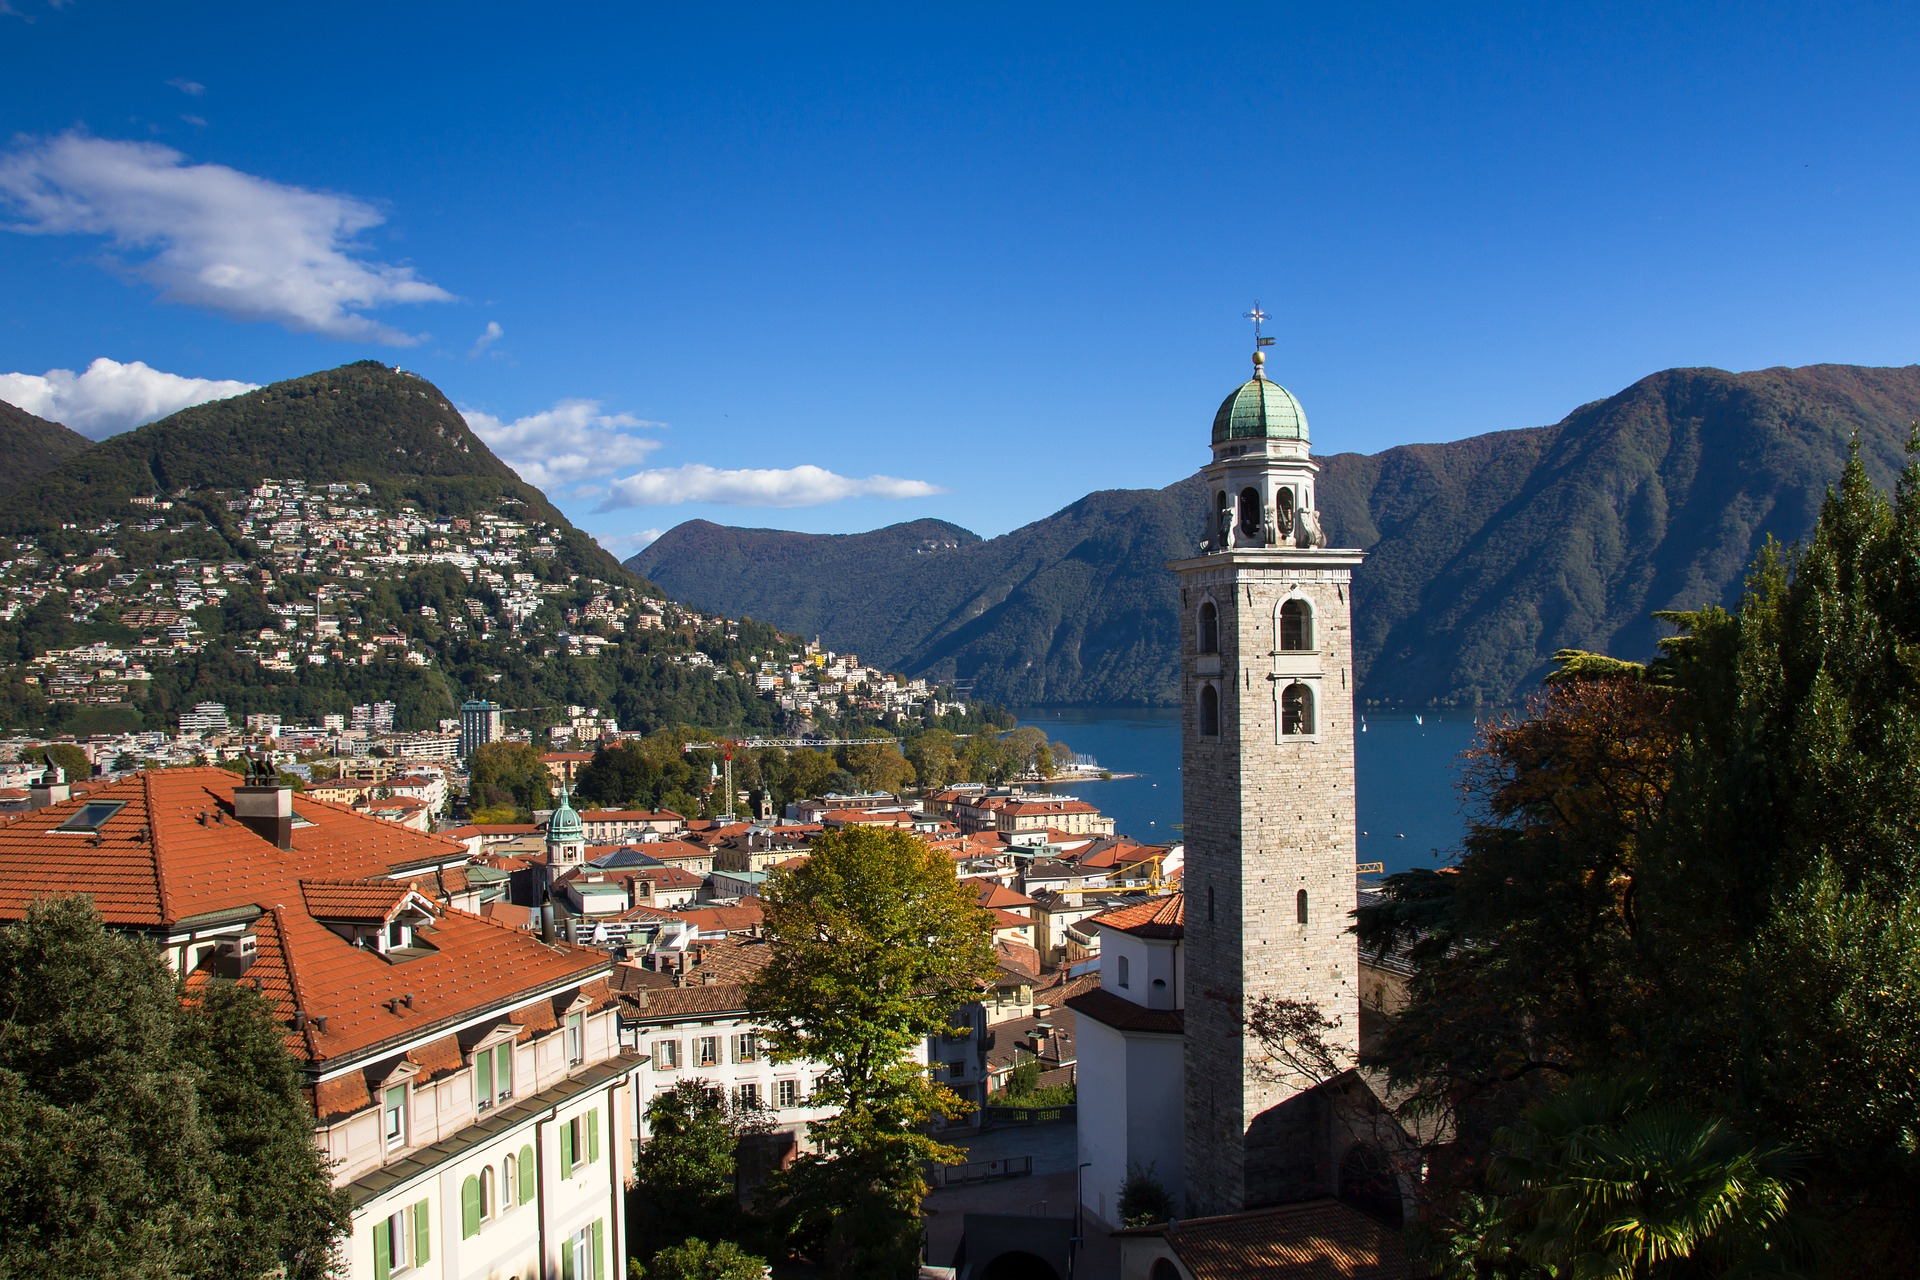 https://pixabay.com/it/photos/lugano-monte-bre-2831362/